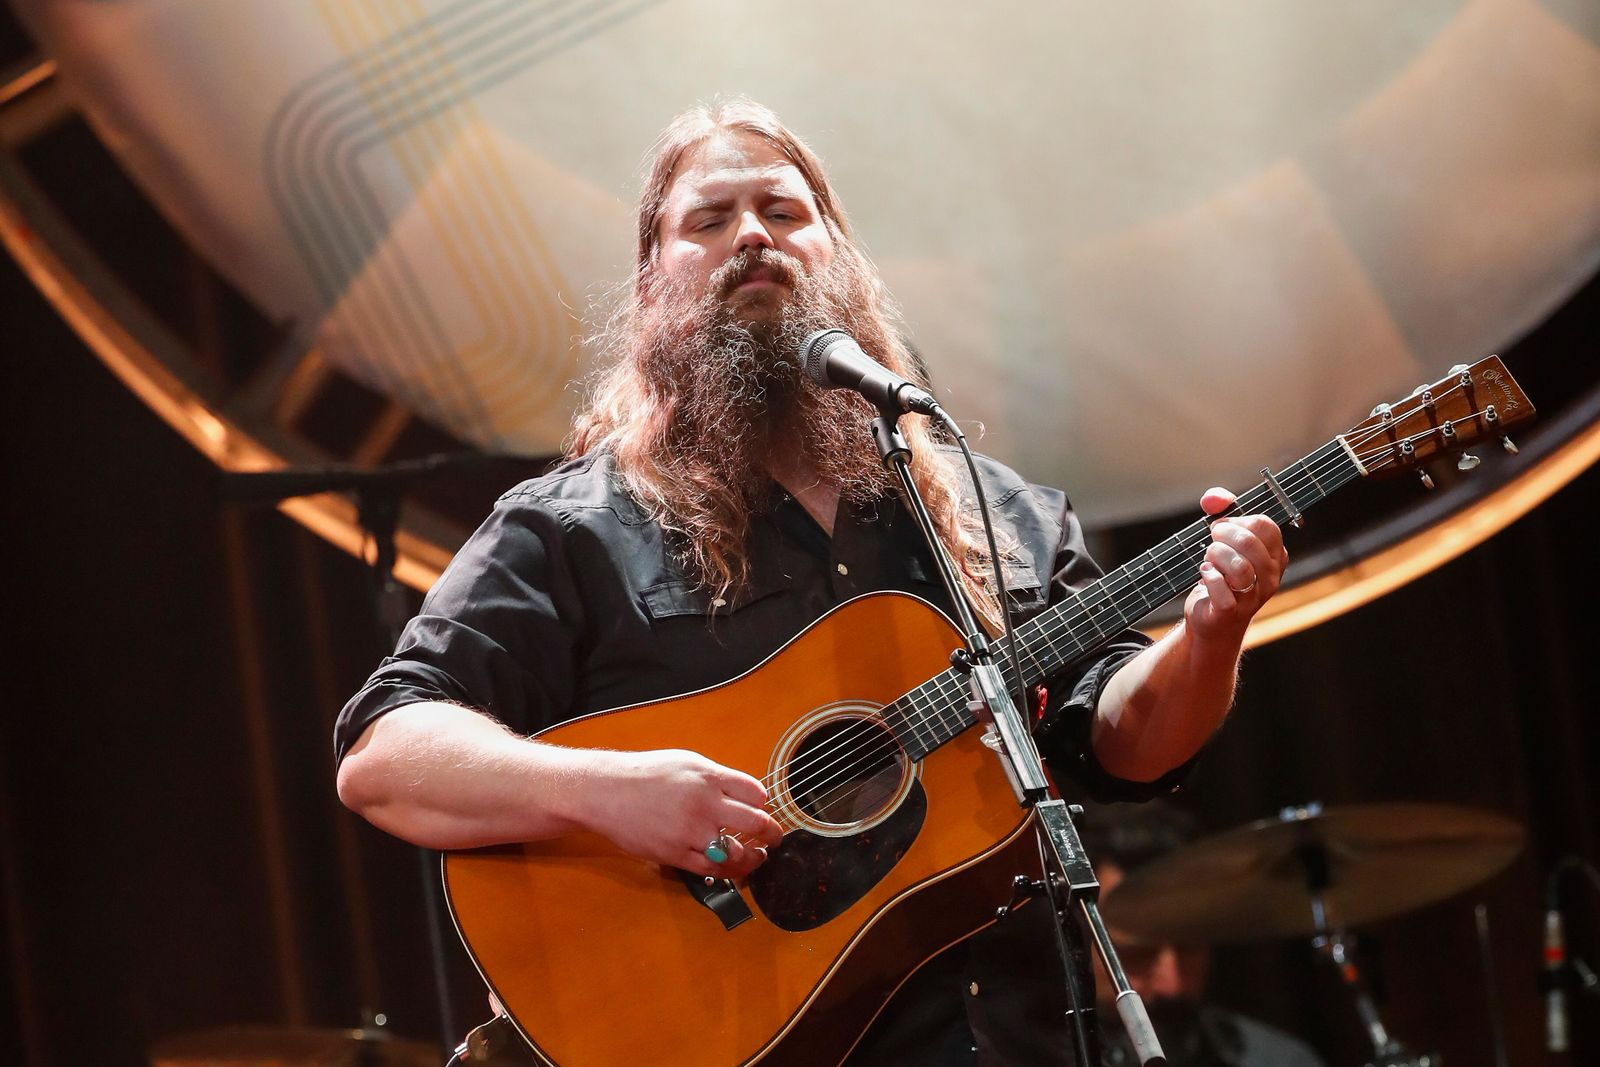 FILE - In this Aug. 22, 2018, file photo, Chris Stapleton performs at the 12th Annual ACM Honors at the Ryman Auditorium in Nashville, Tenn.{ } (Photo by Al Wagner/Invision/AP, File)